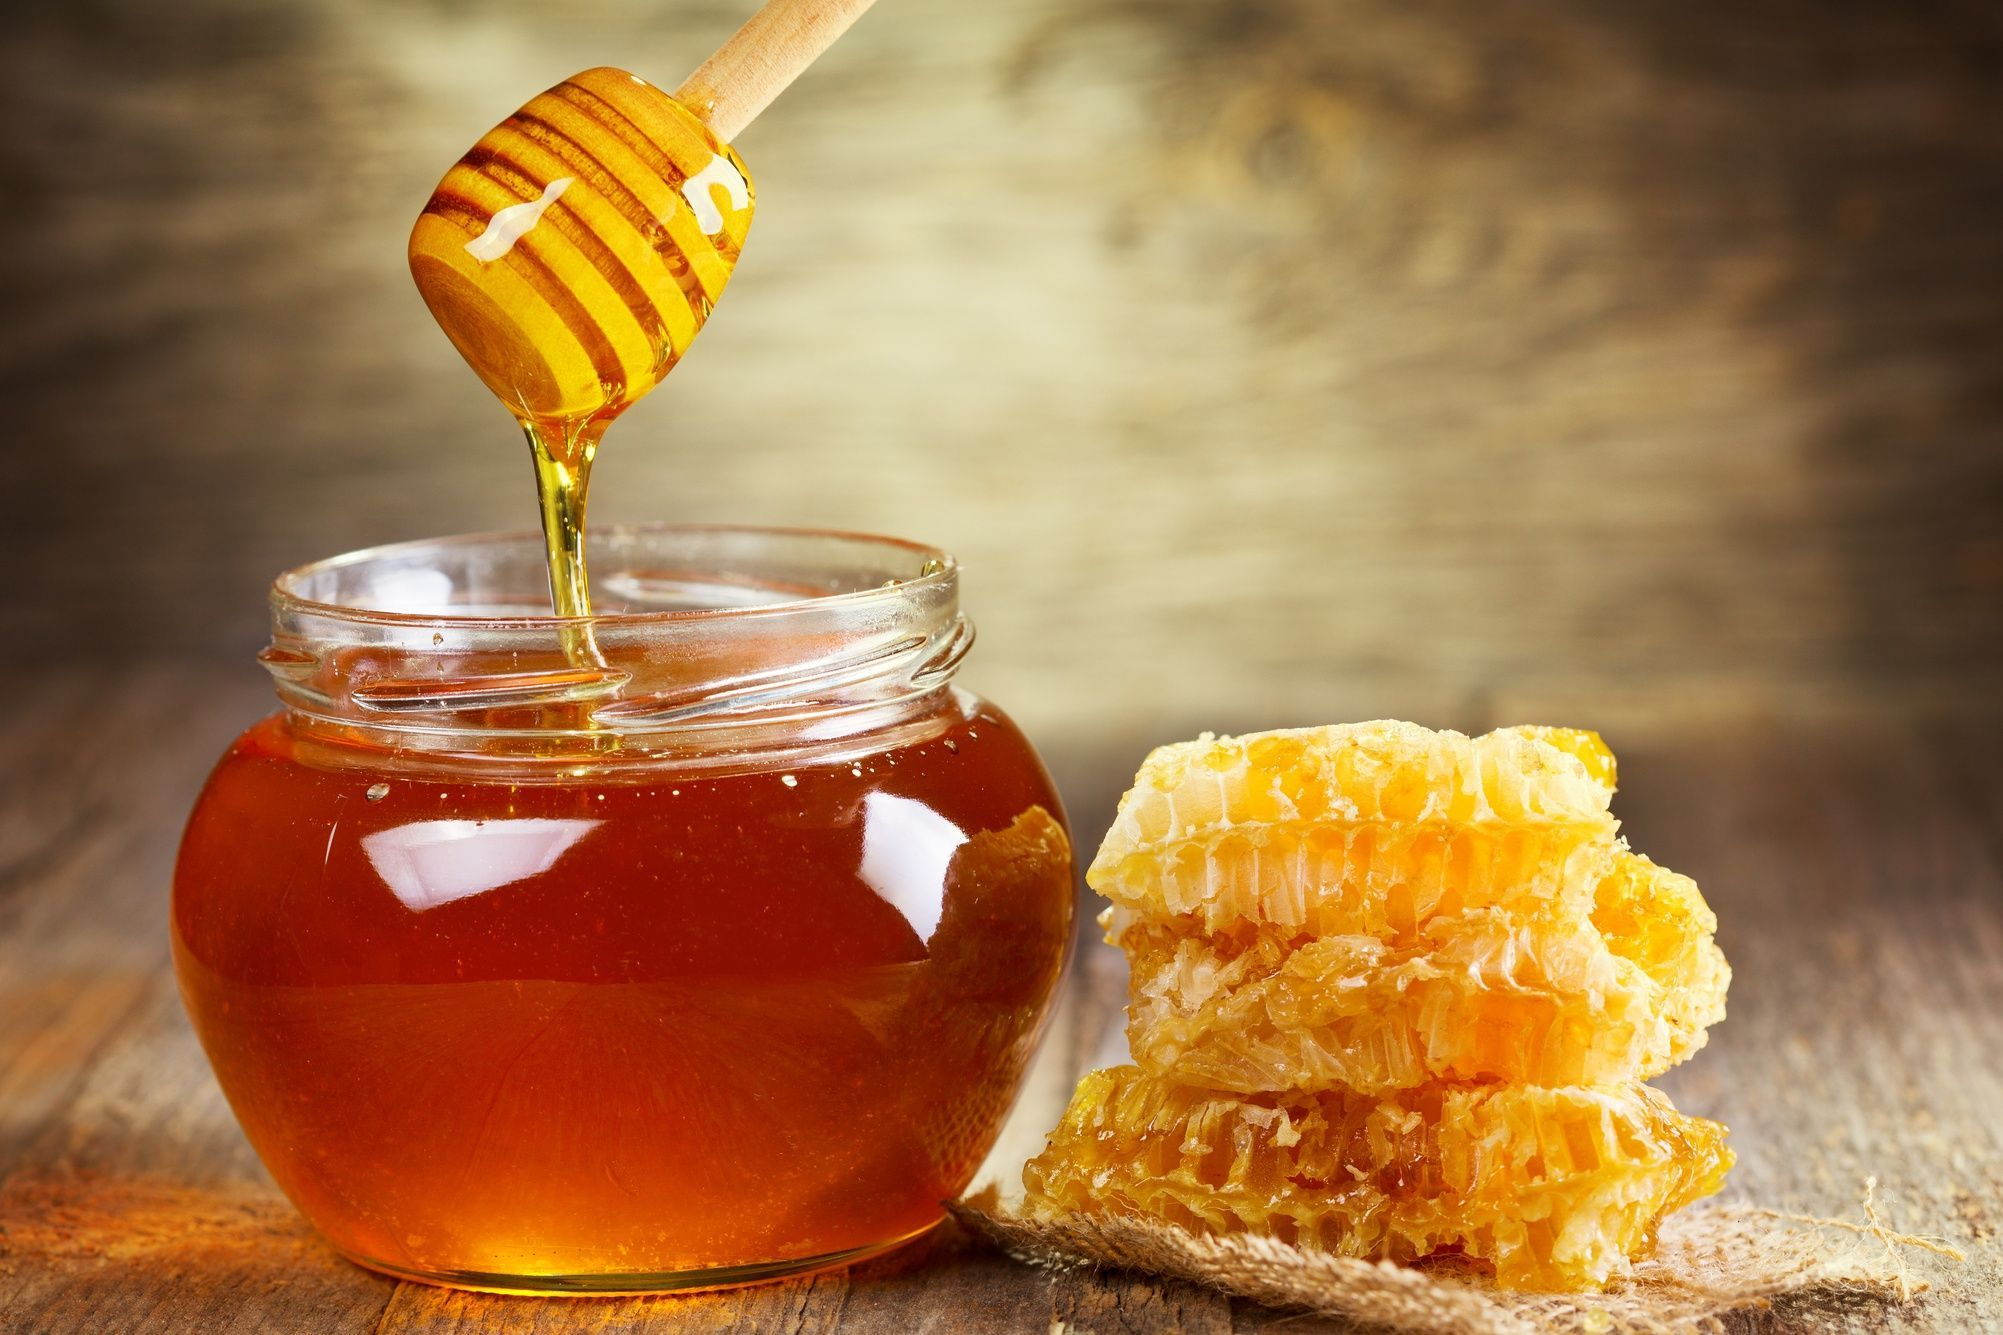 Apitherapy: Manuka honey, healing and antibacterial